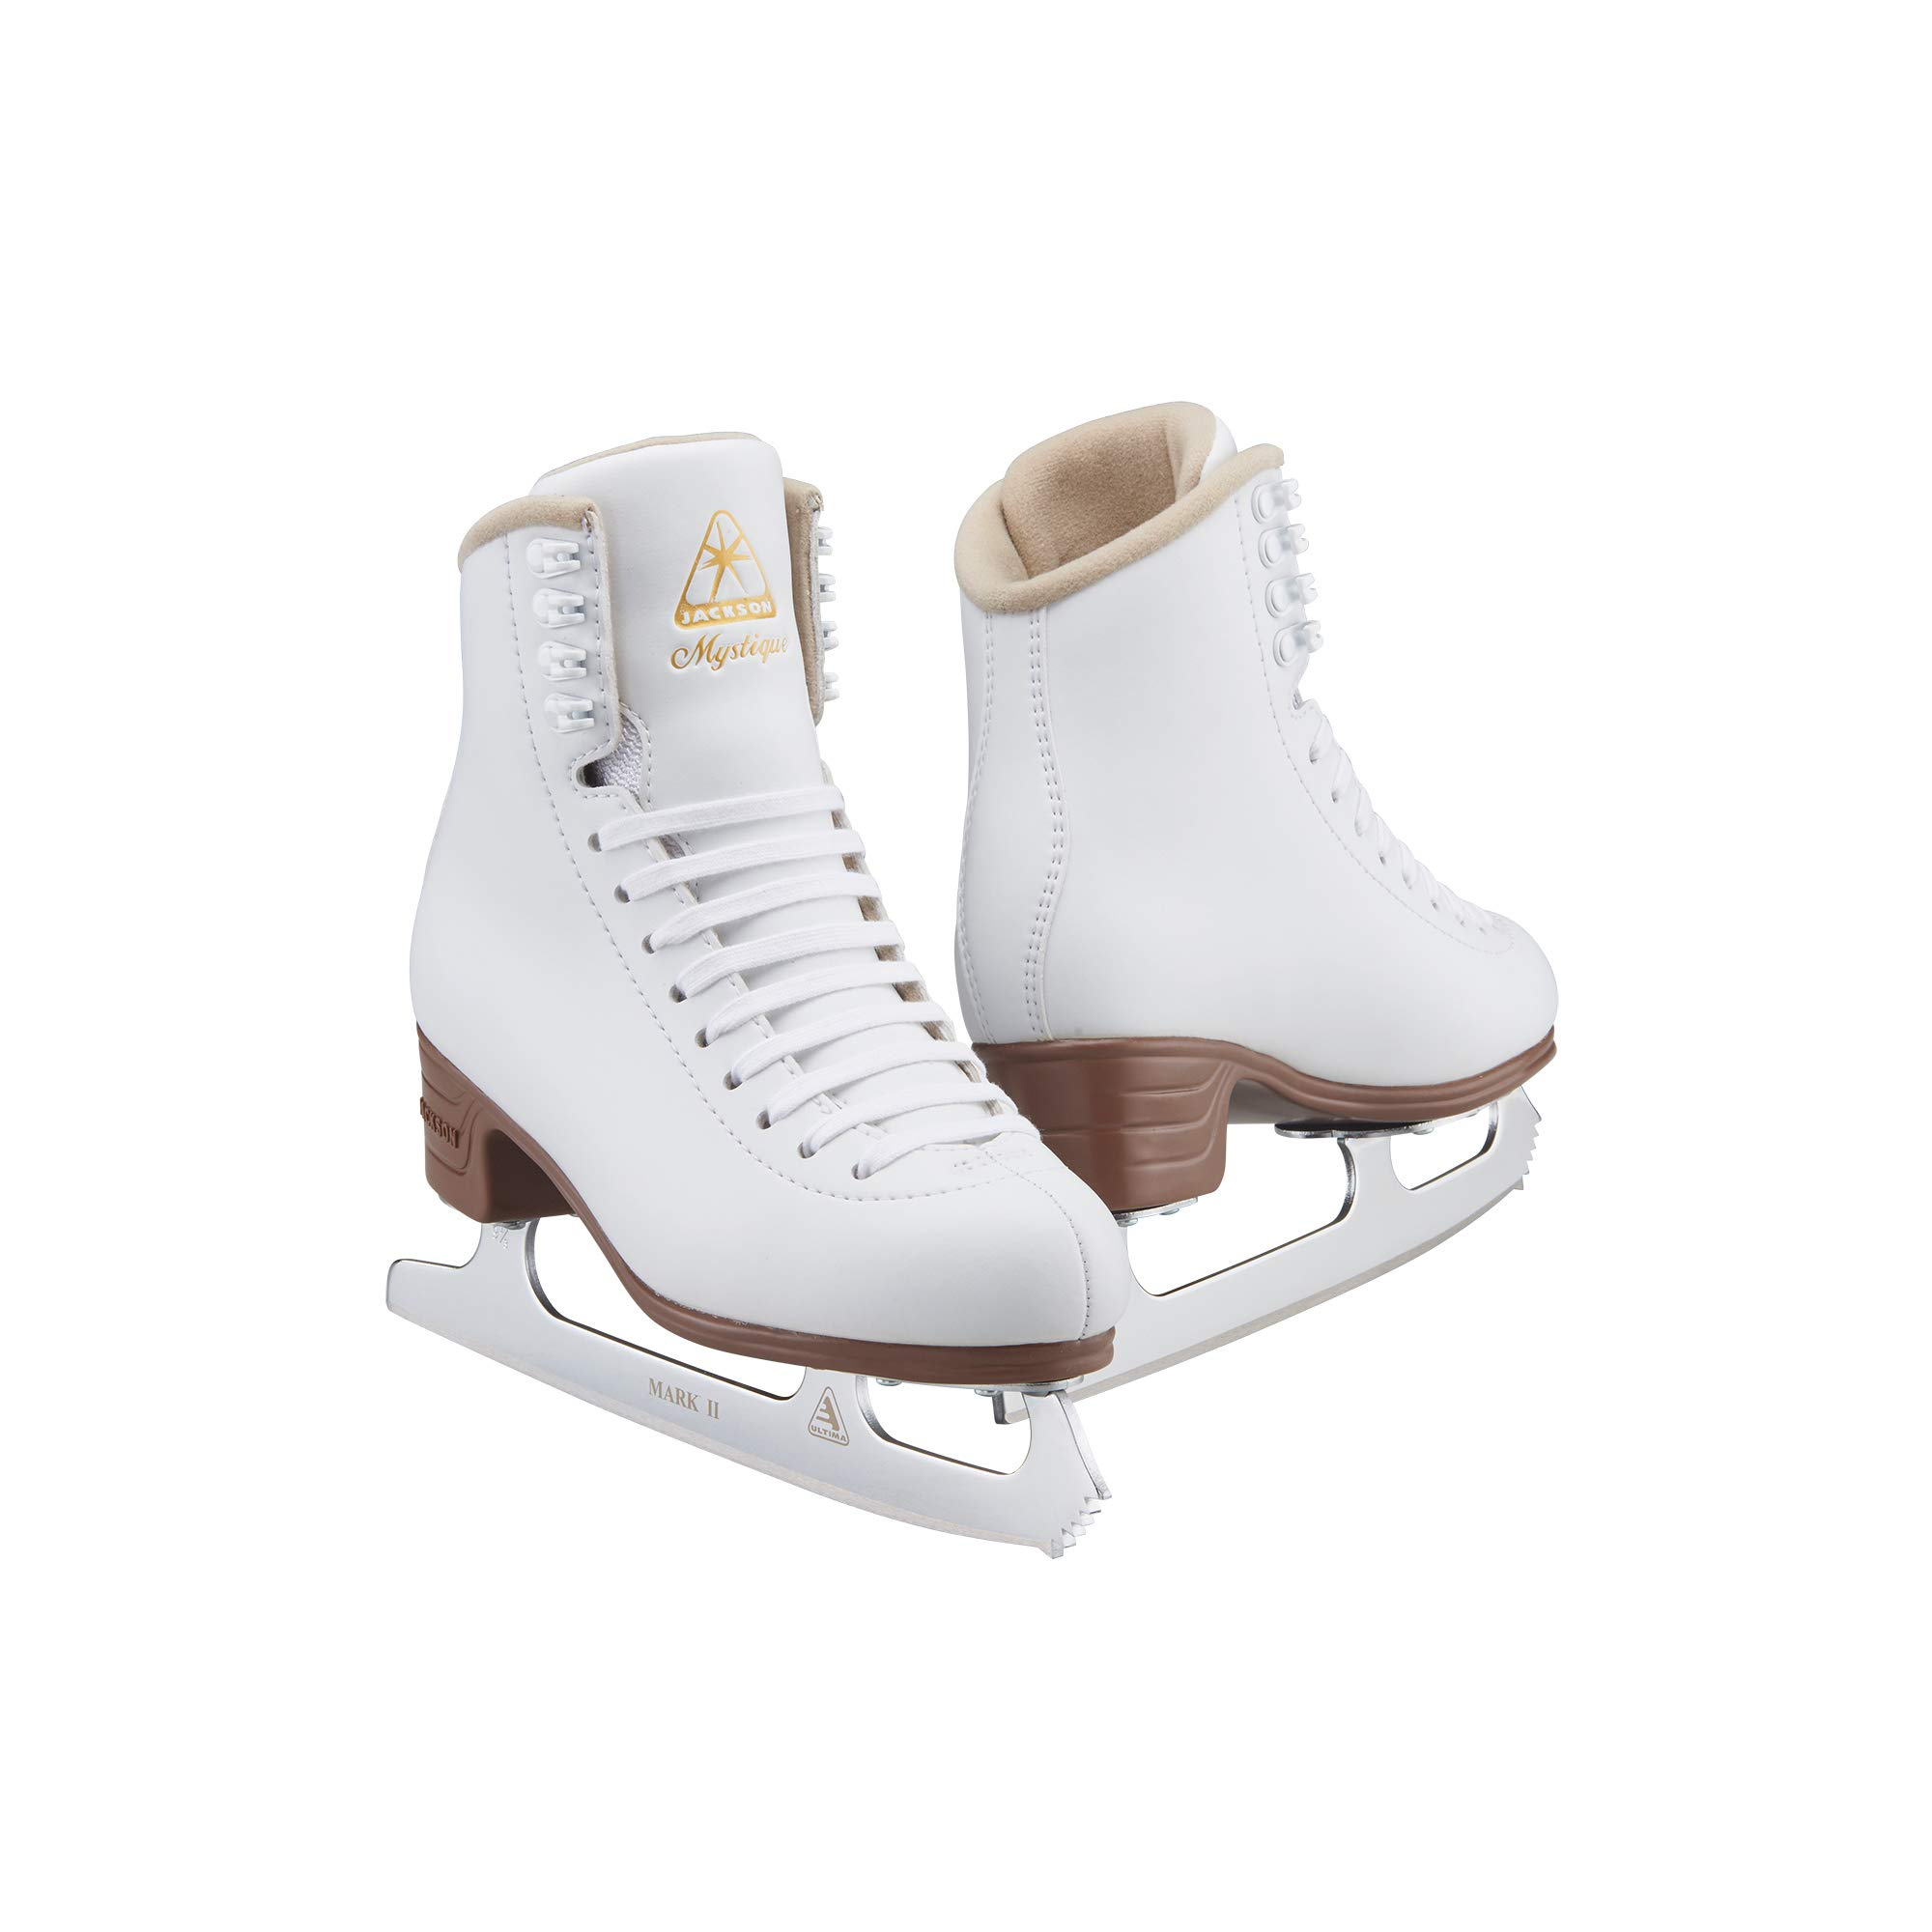 Jackson Ultima Mystique Series / Figure Ice Skates